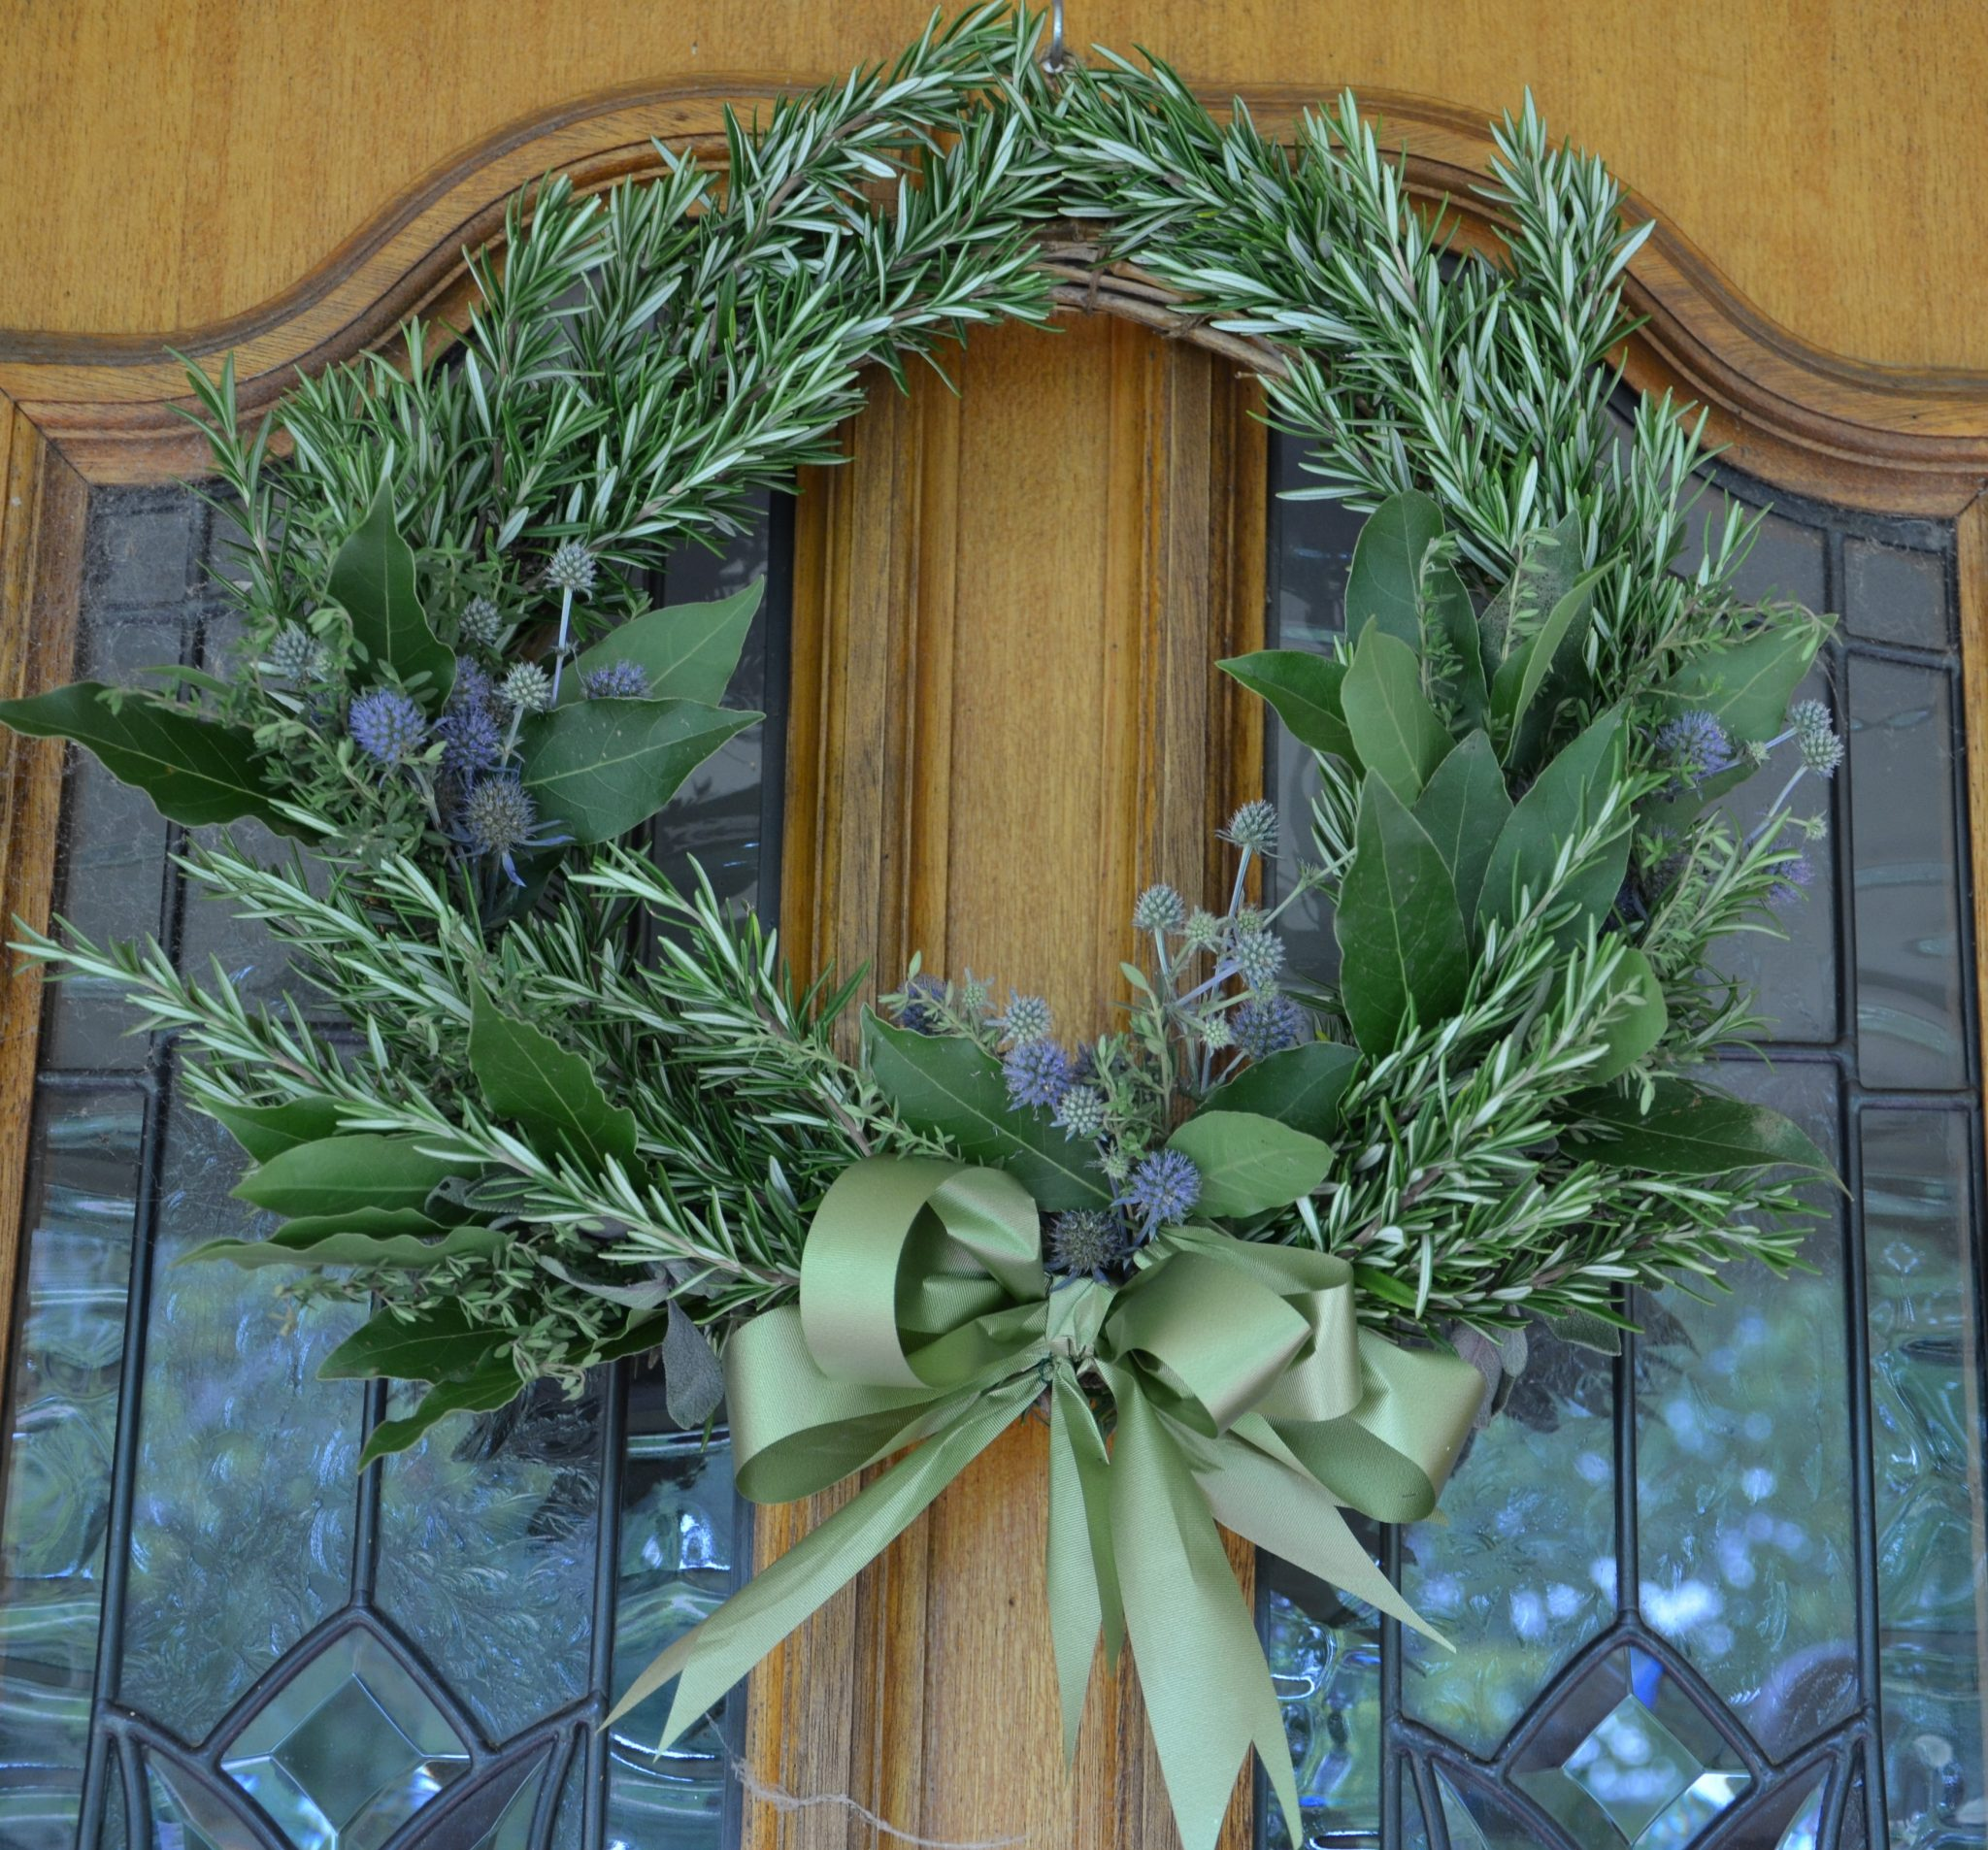 grow your own food my productive backyard diy gardening garden southern highlands wildes meadow burrawang robertson garden consultant grow your own good food herbal wreath rosemary wreath diy christmas herbs christmas